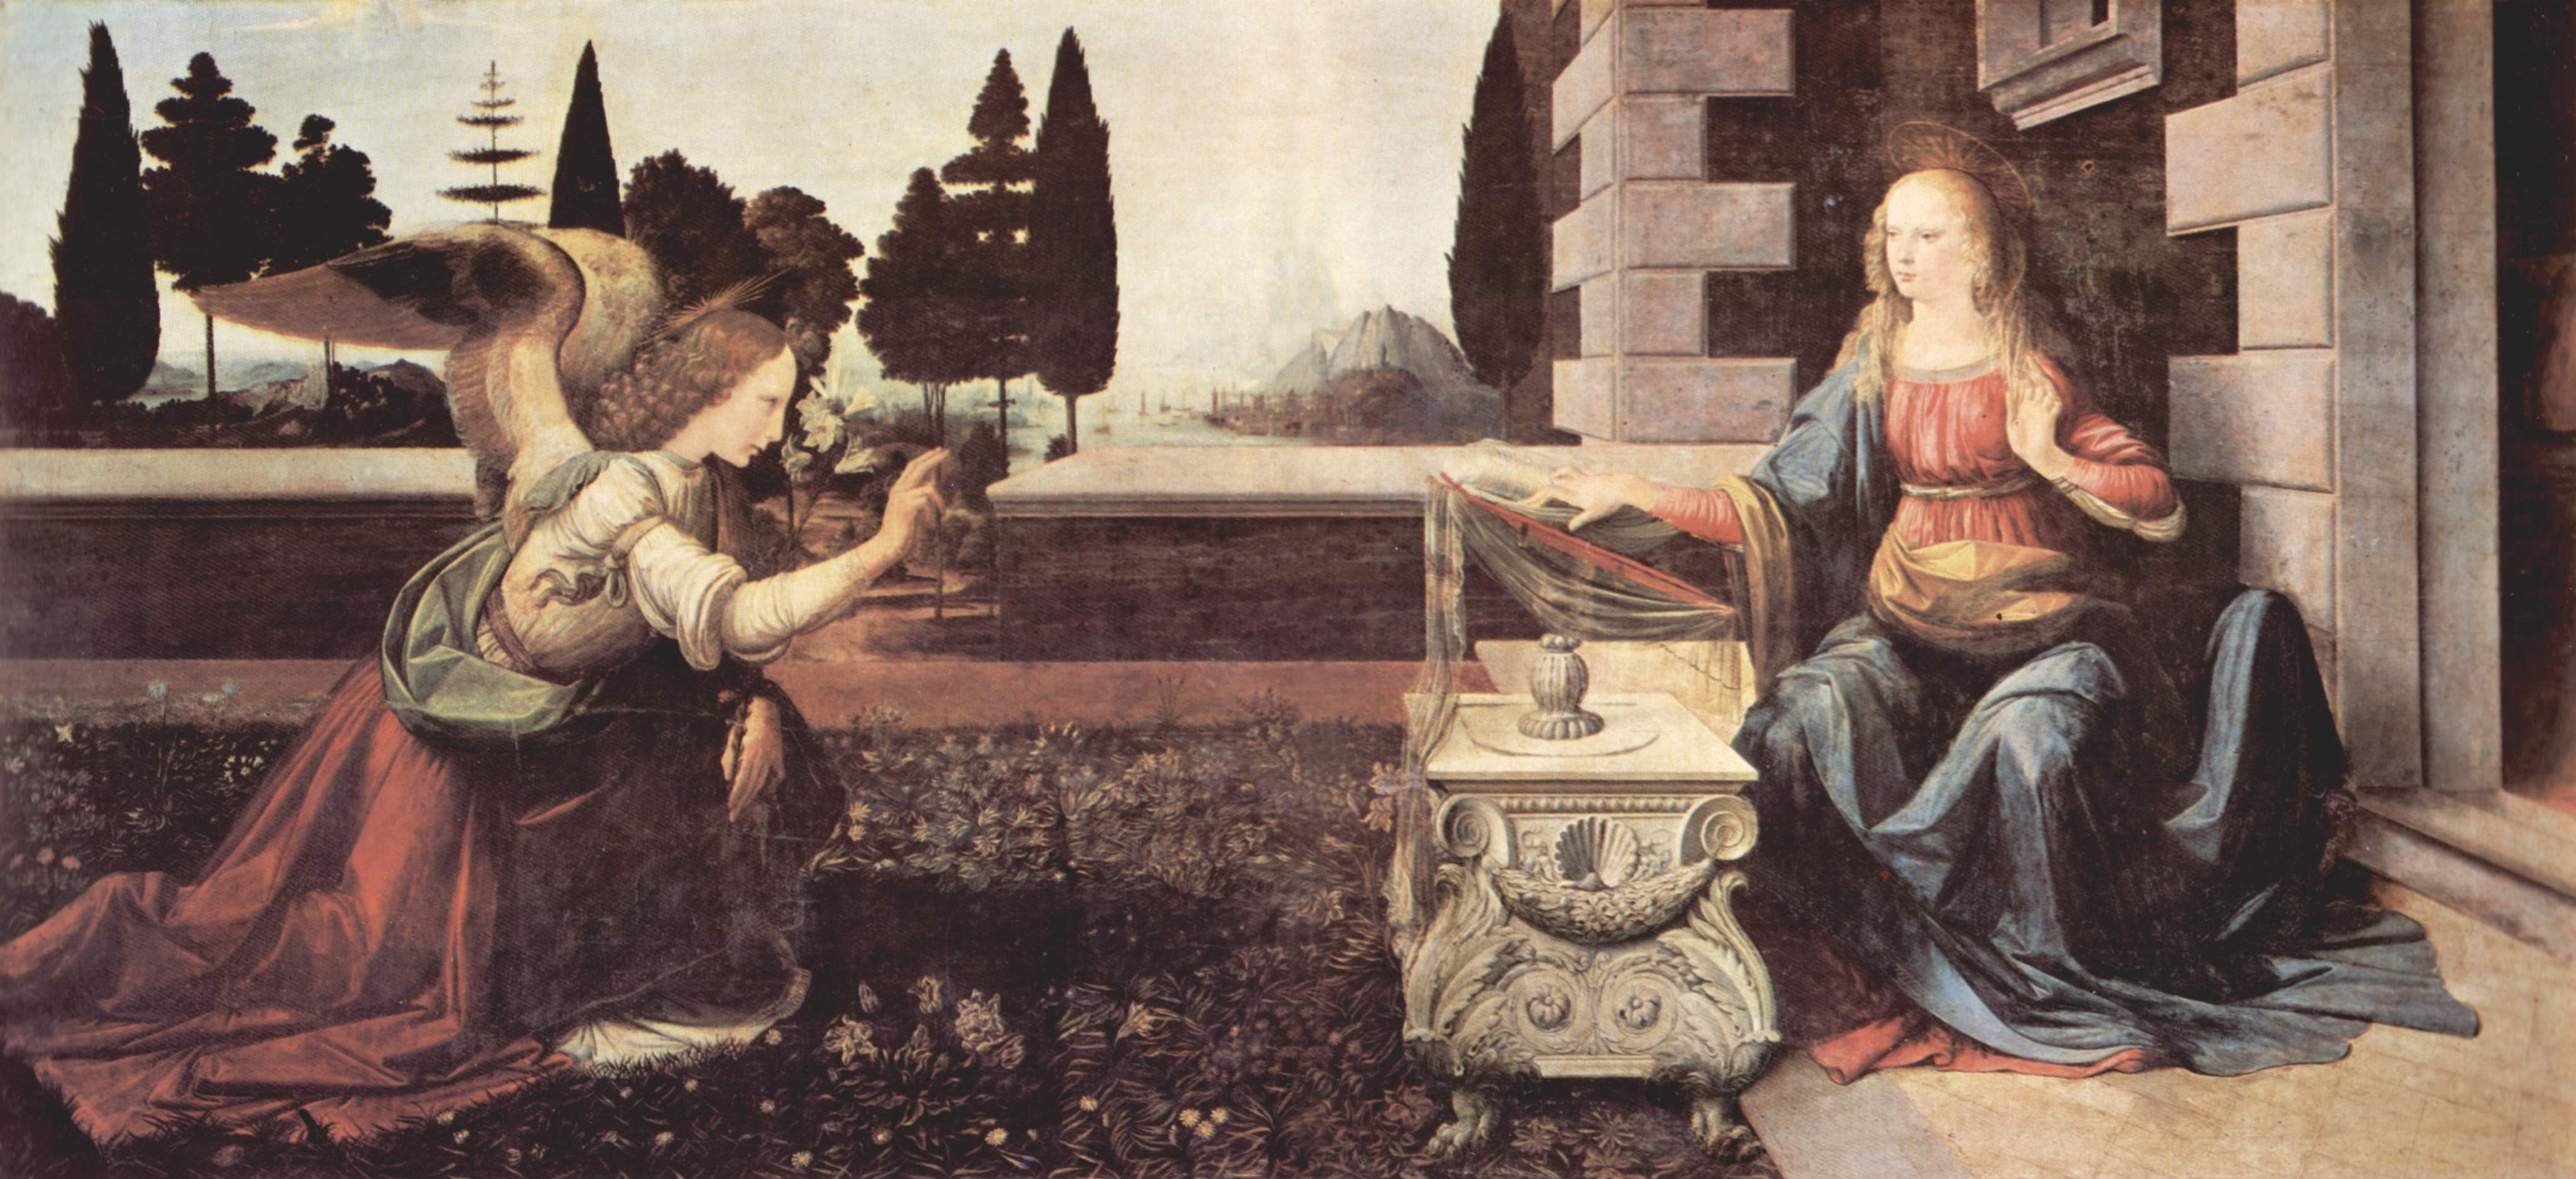 https://upload.wikimedia.org/wikipedia/commons/3/31/Leonardo_da_Vinci_052.jpg